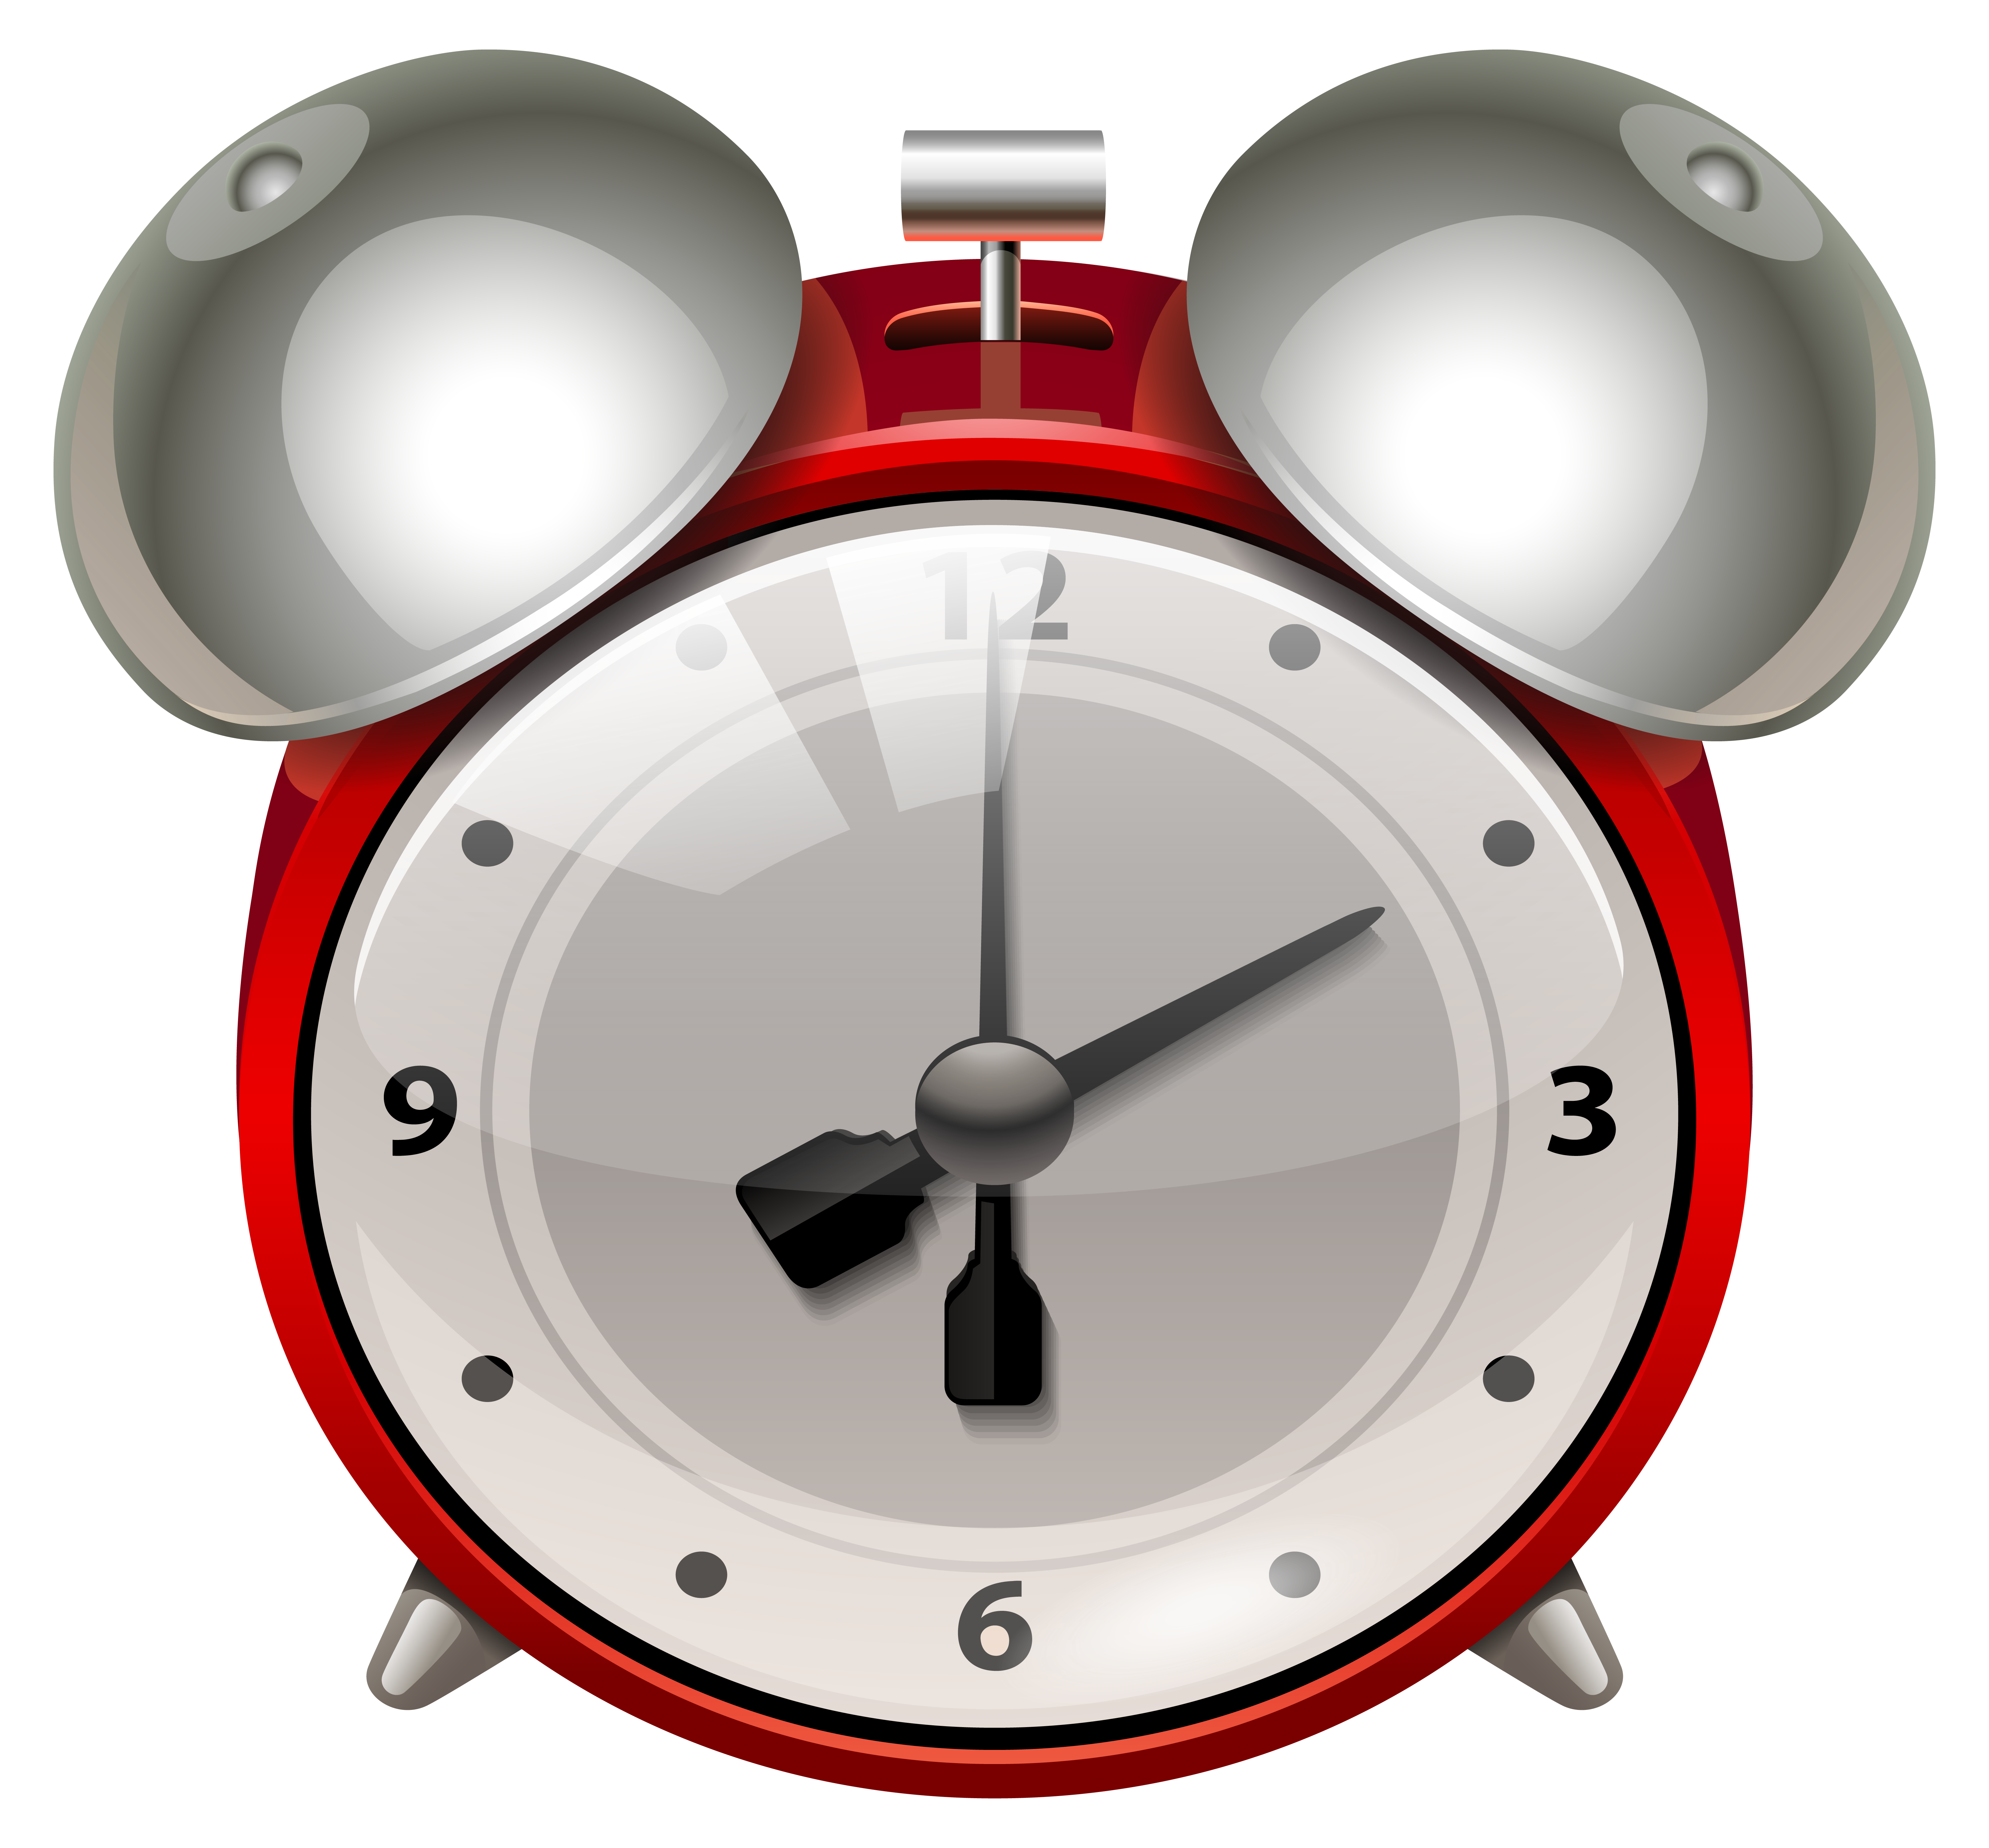 Red alarm clock clipart picture library Red Alarm Clock PNG Clip Art - Best WEB Clipart picture library